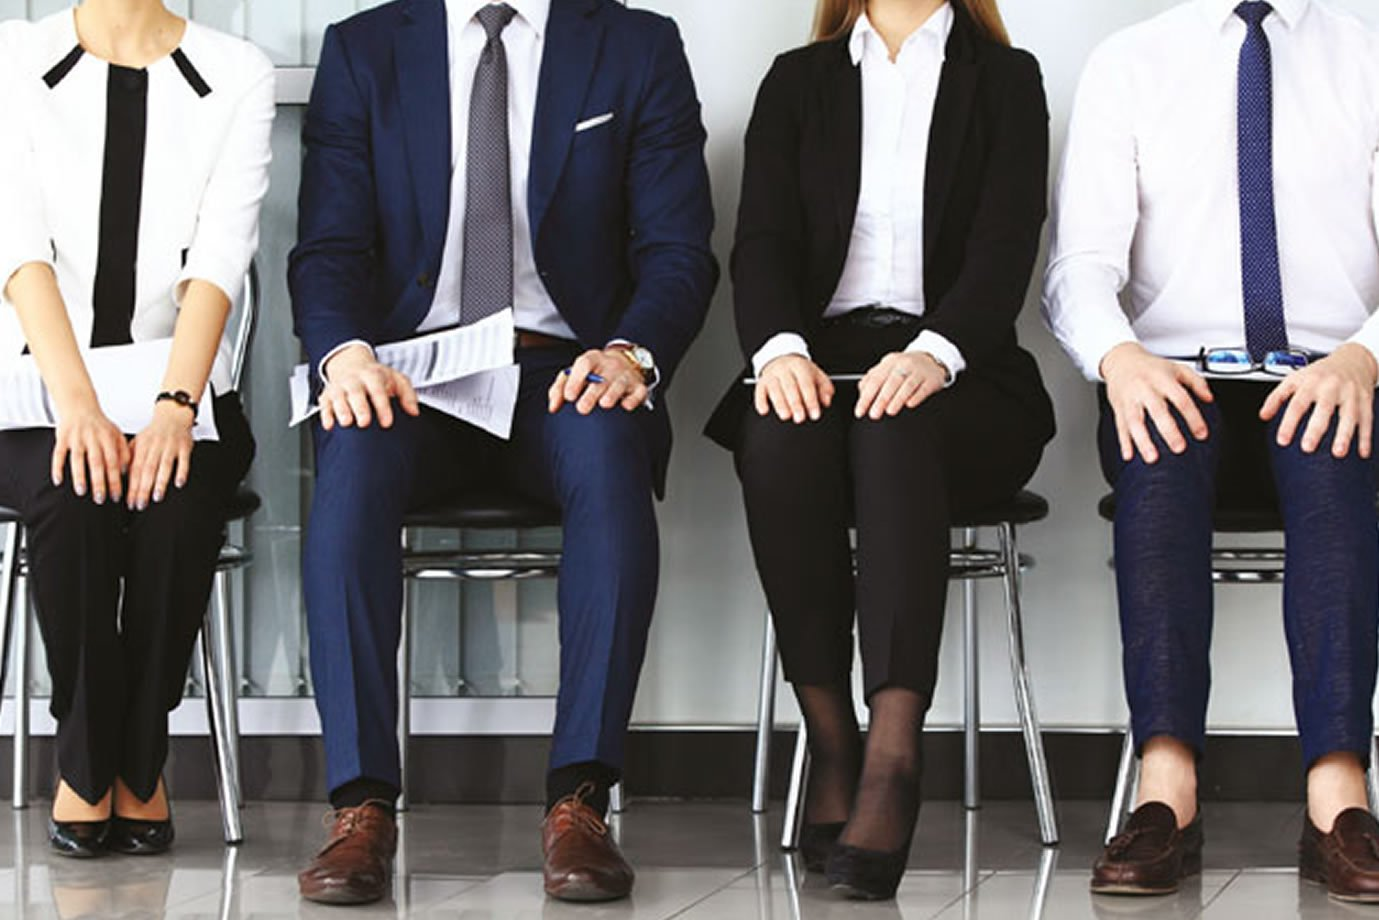 Recruitment Agencies – How Video Interviewing Puts You Above the Competition